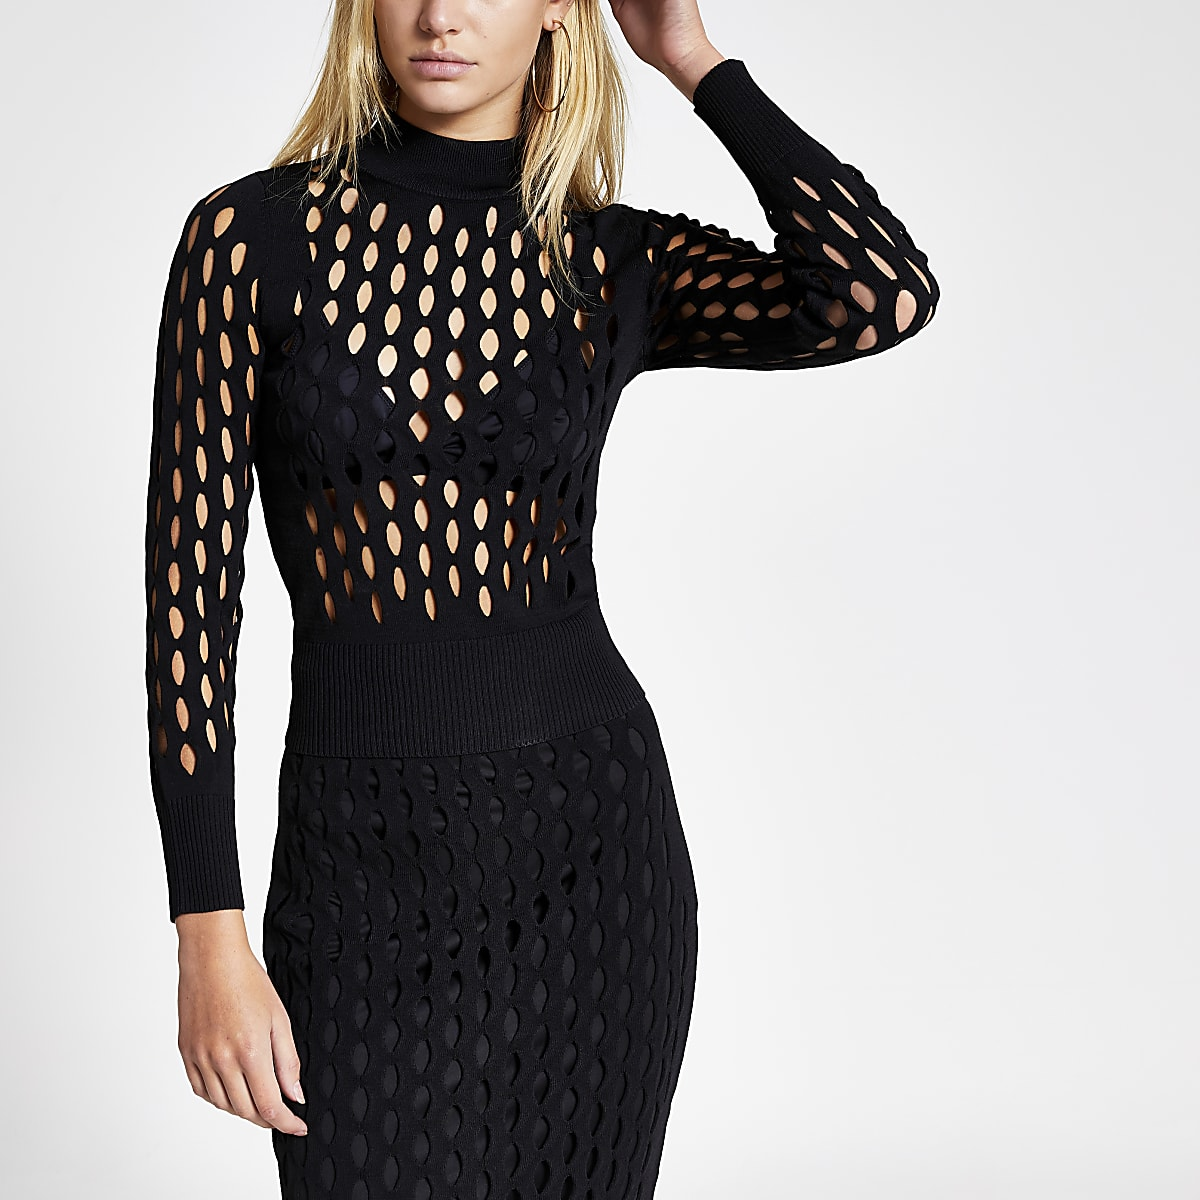 Black mesh fitted long sleeve top